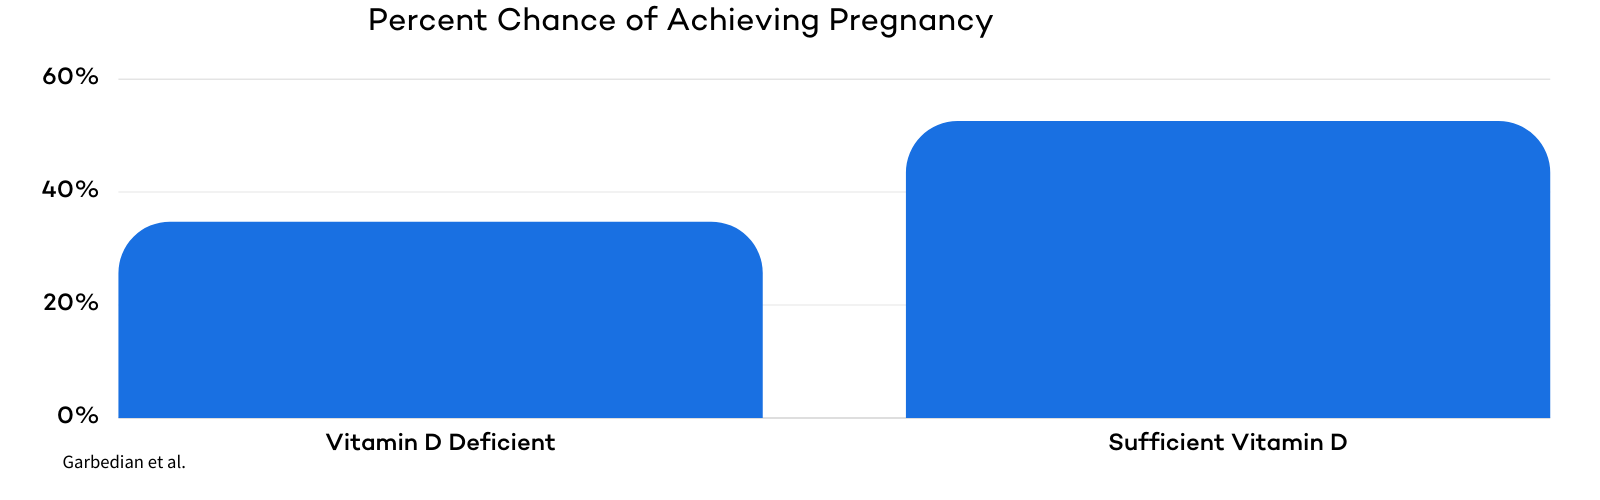 Best Supplements for PCOS - Vitamin D and Pregnacy Chances